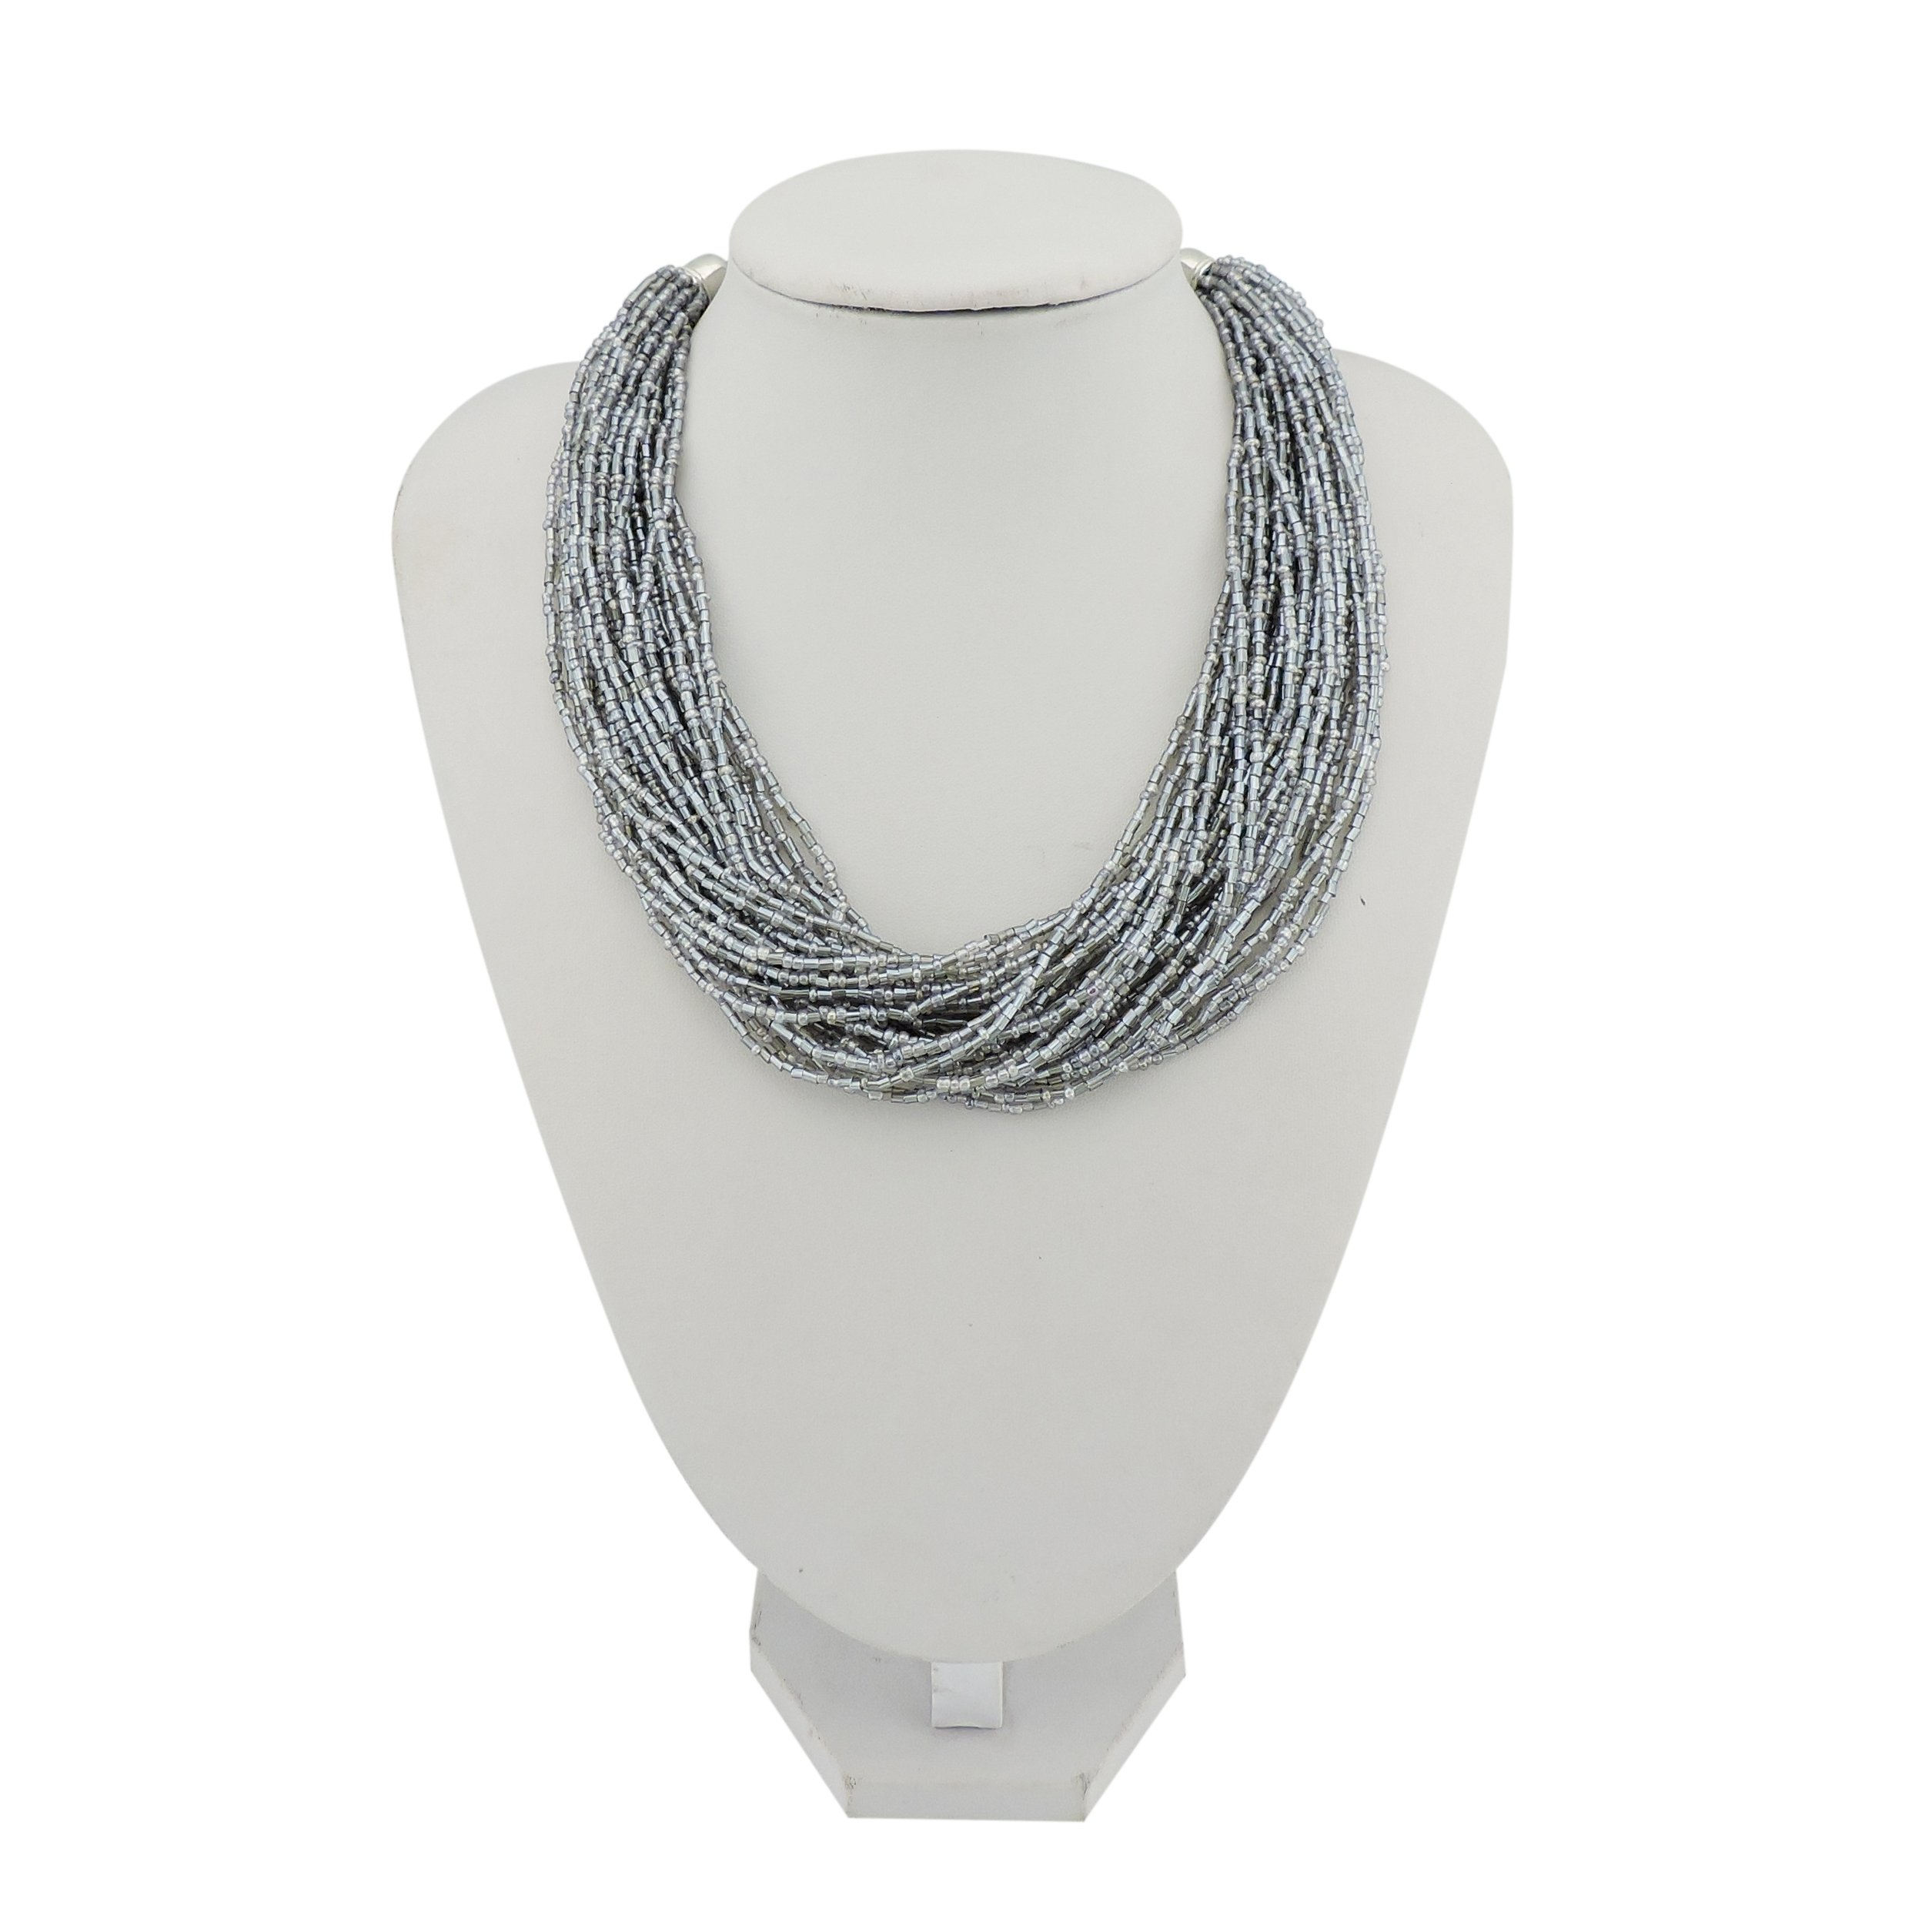 Bocar Multiple Strand Handmade Beaded 16'' Statement Collar Necklace for Women with Gift Box (NK-10402-Silver grey)